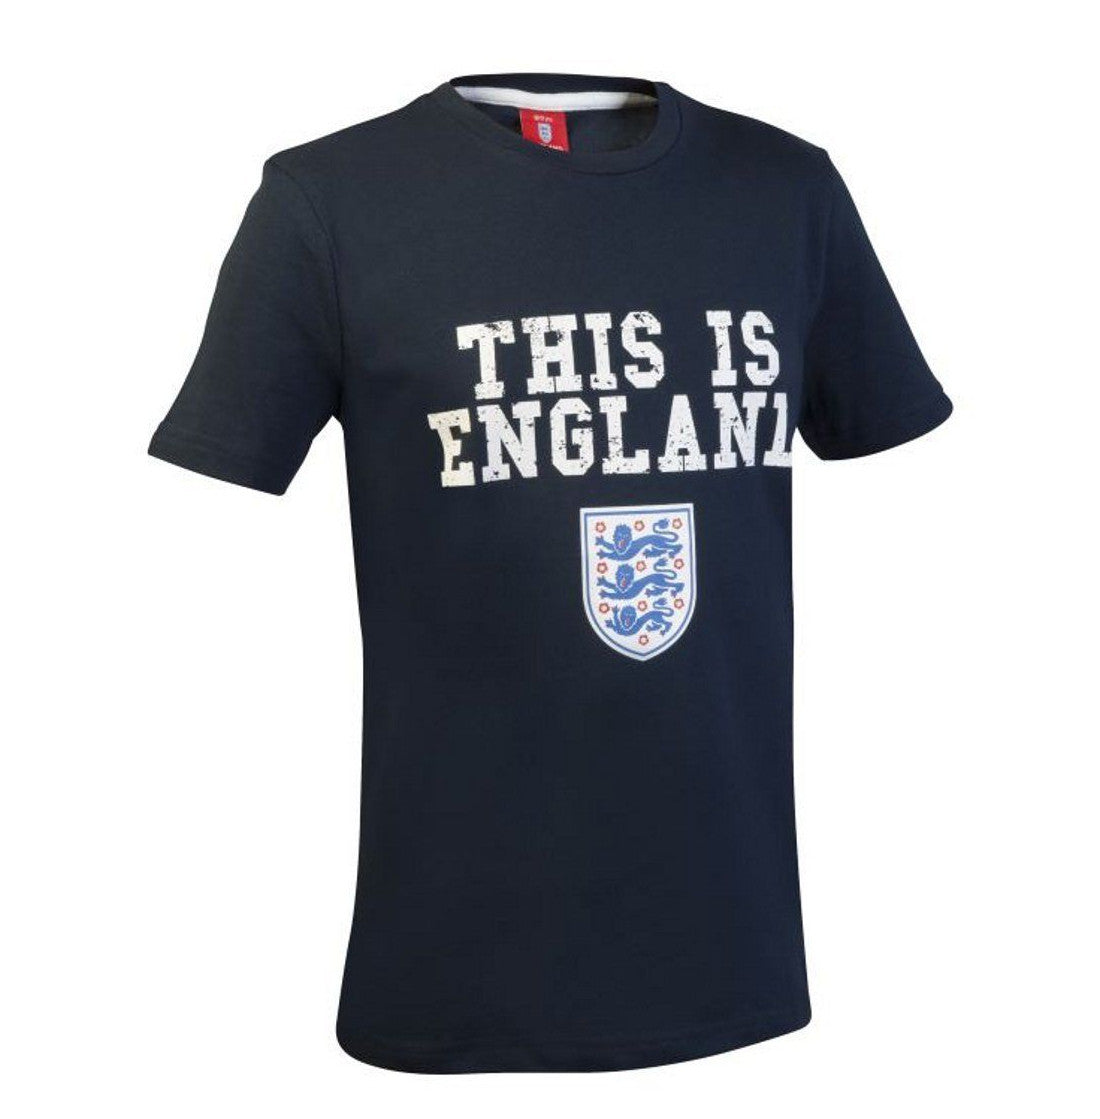 46e7f1c4 Official England Football Kids This is England T-shirt